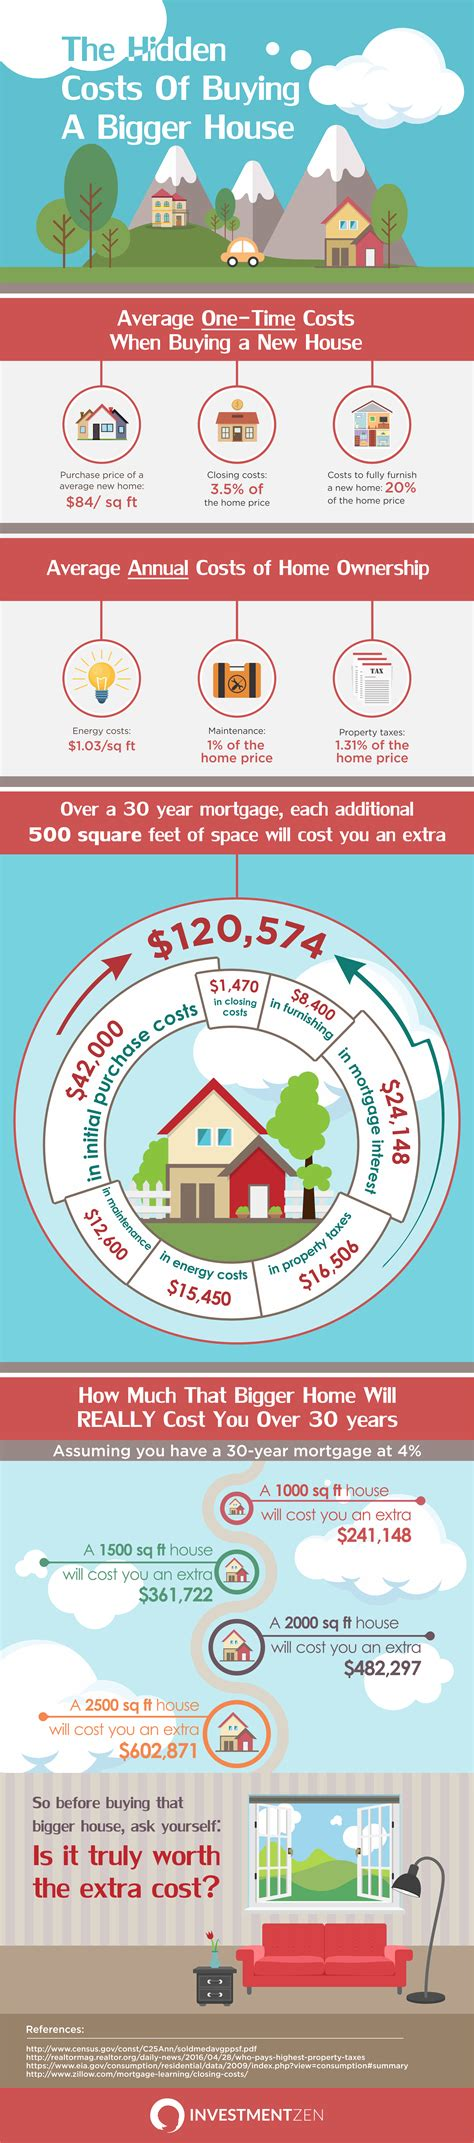 costs of buying house the hidden costs of buying a bigger house infographic daily waffle